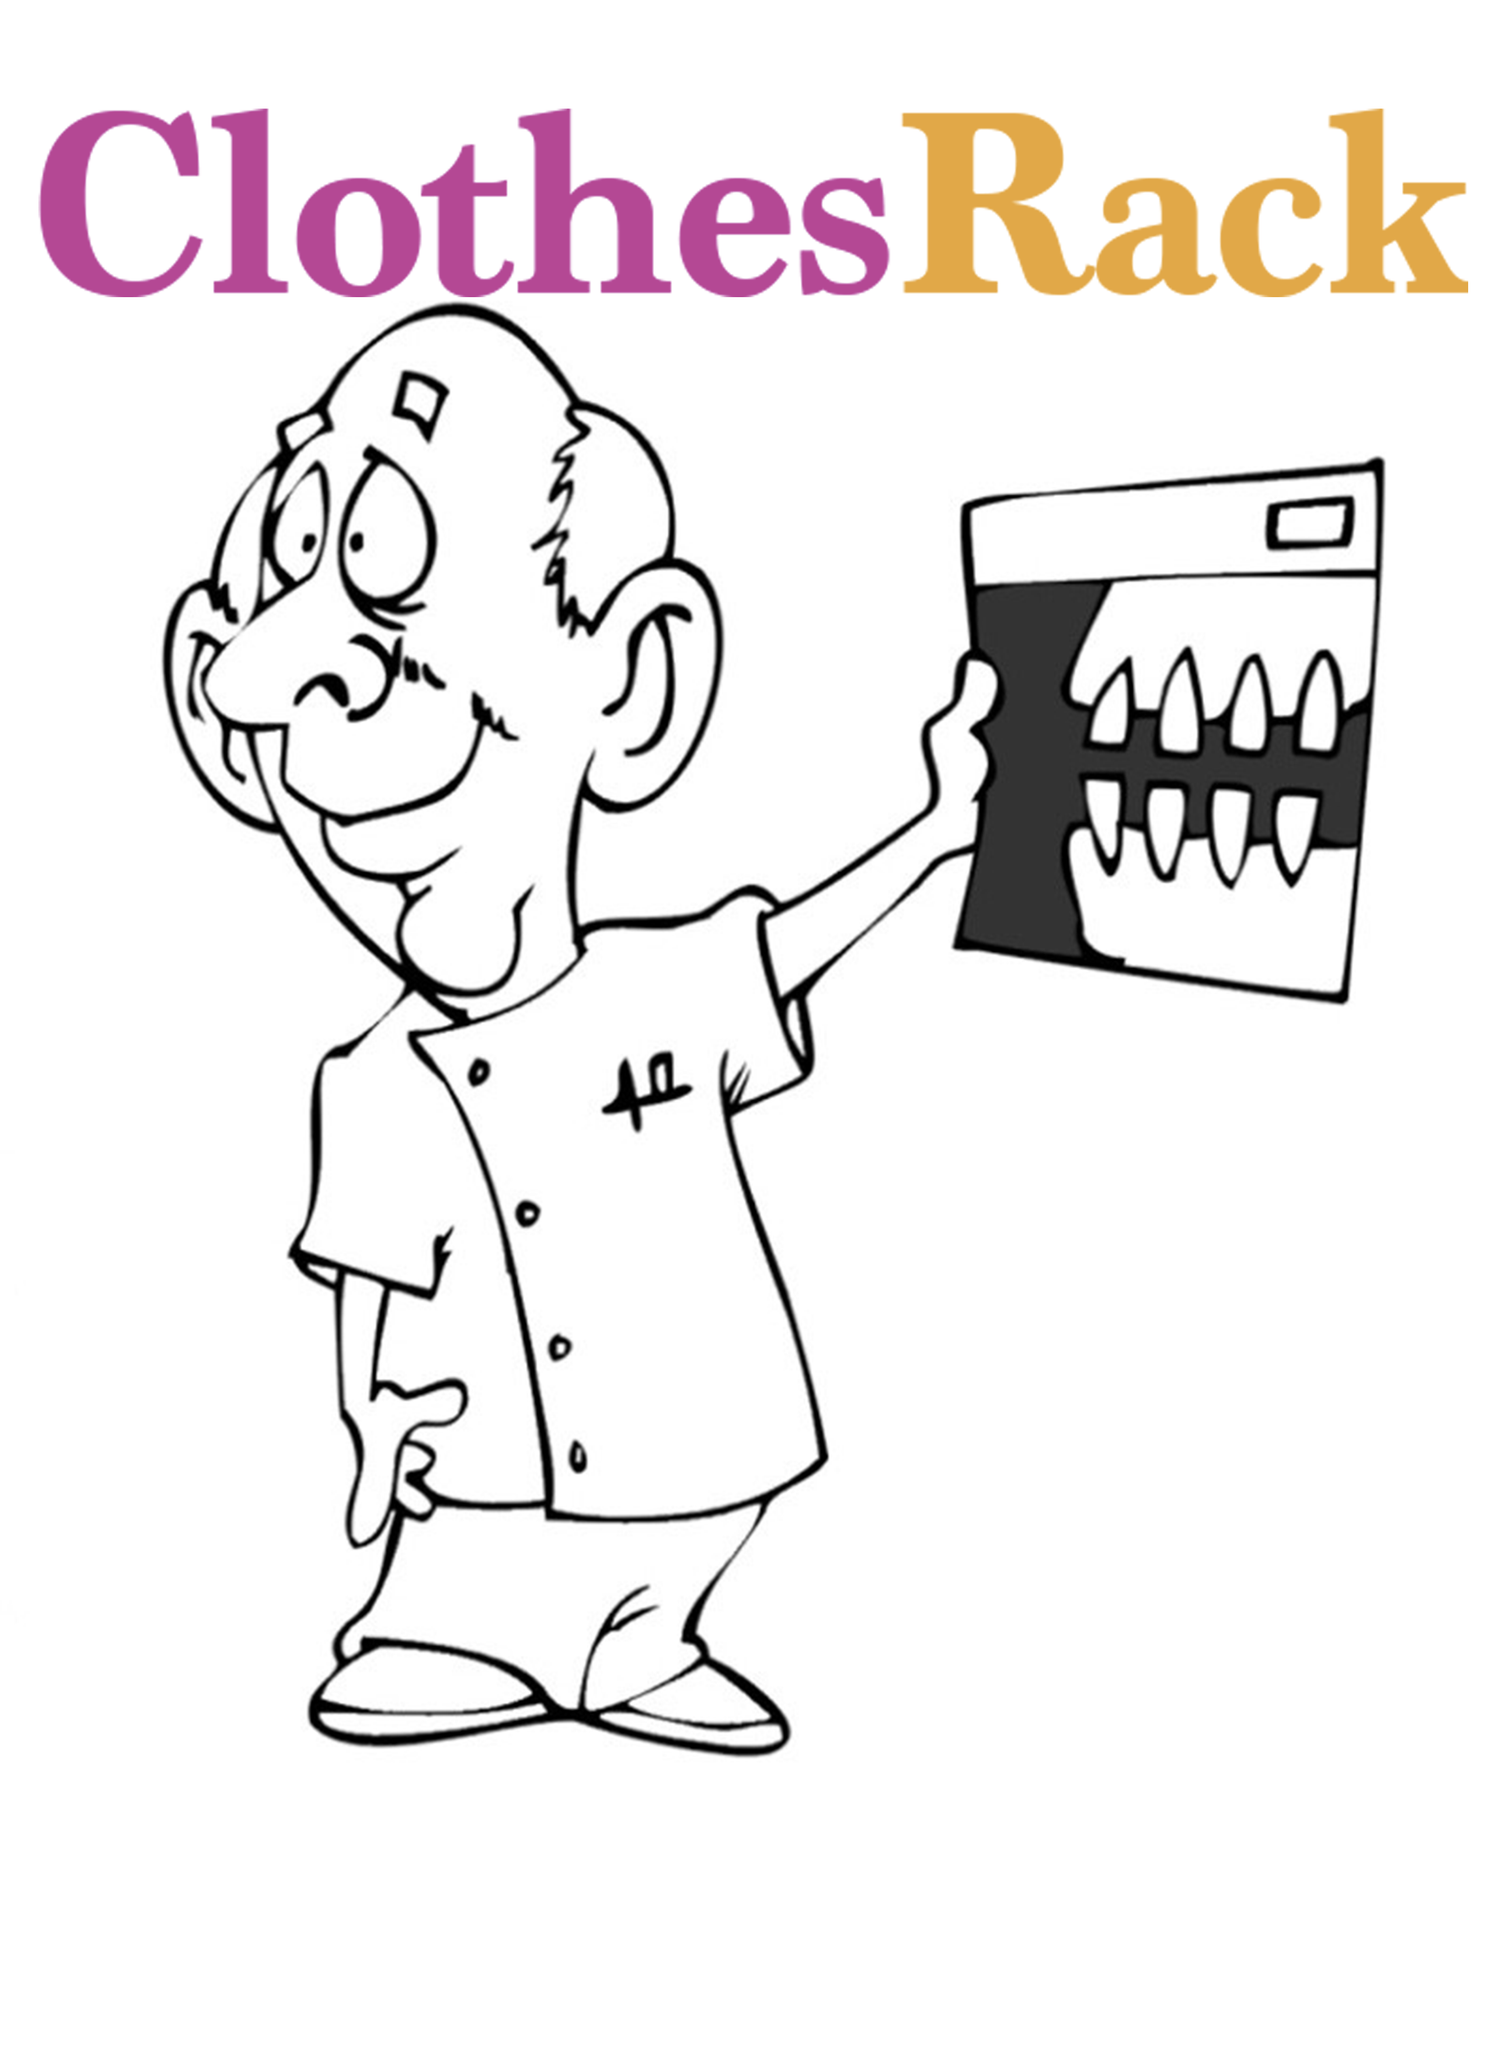 Dental Colouring Pages | Dentist Pictures For Kids | Dental Colouring Pages